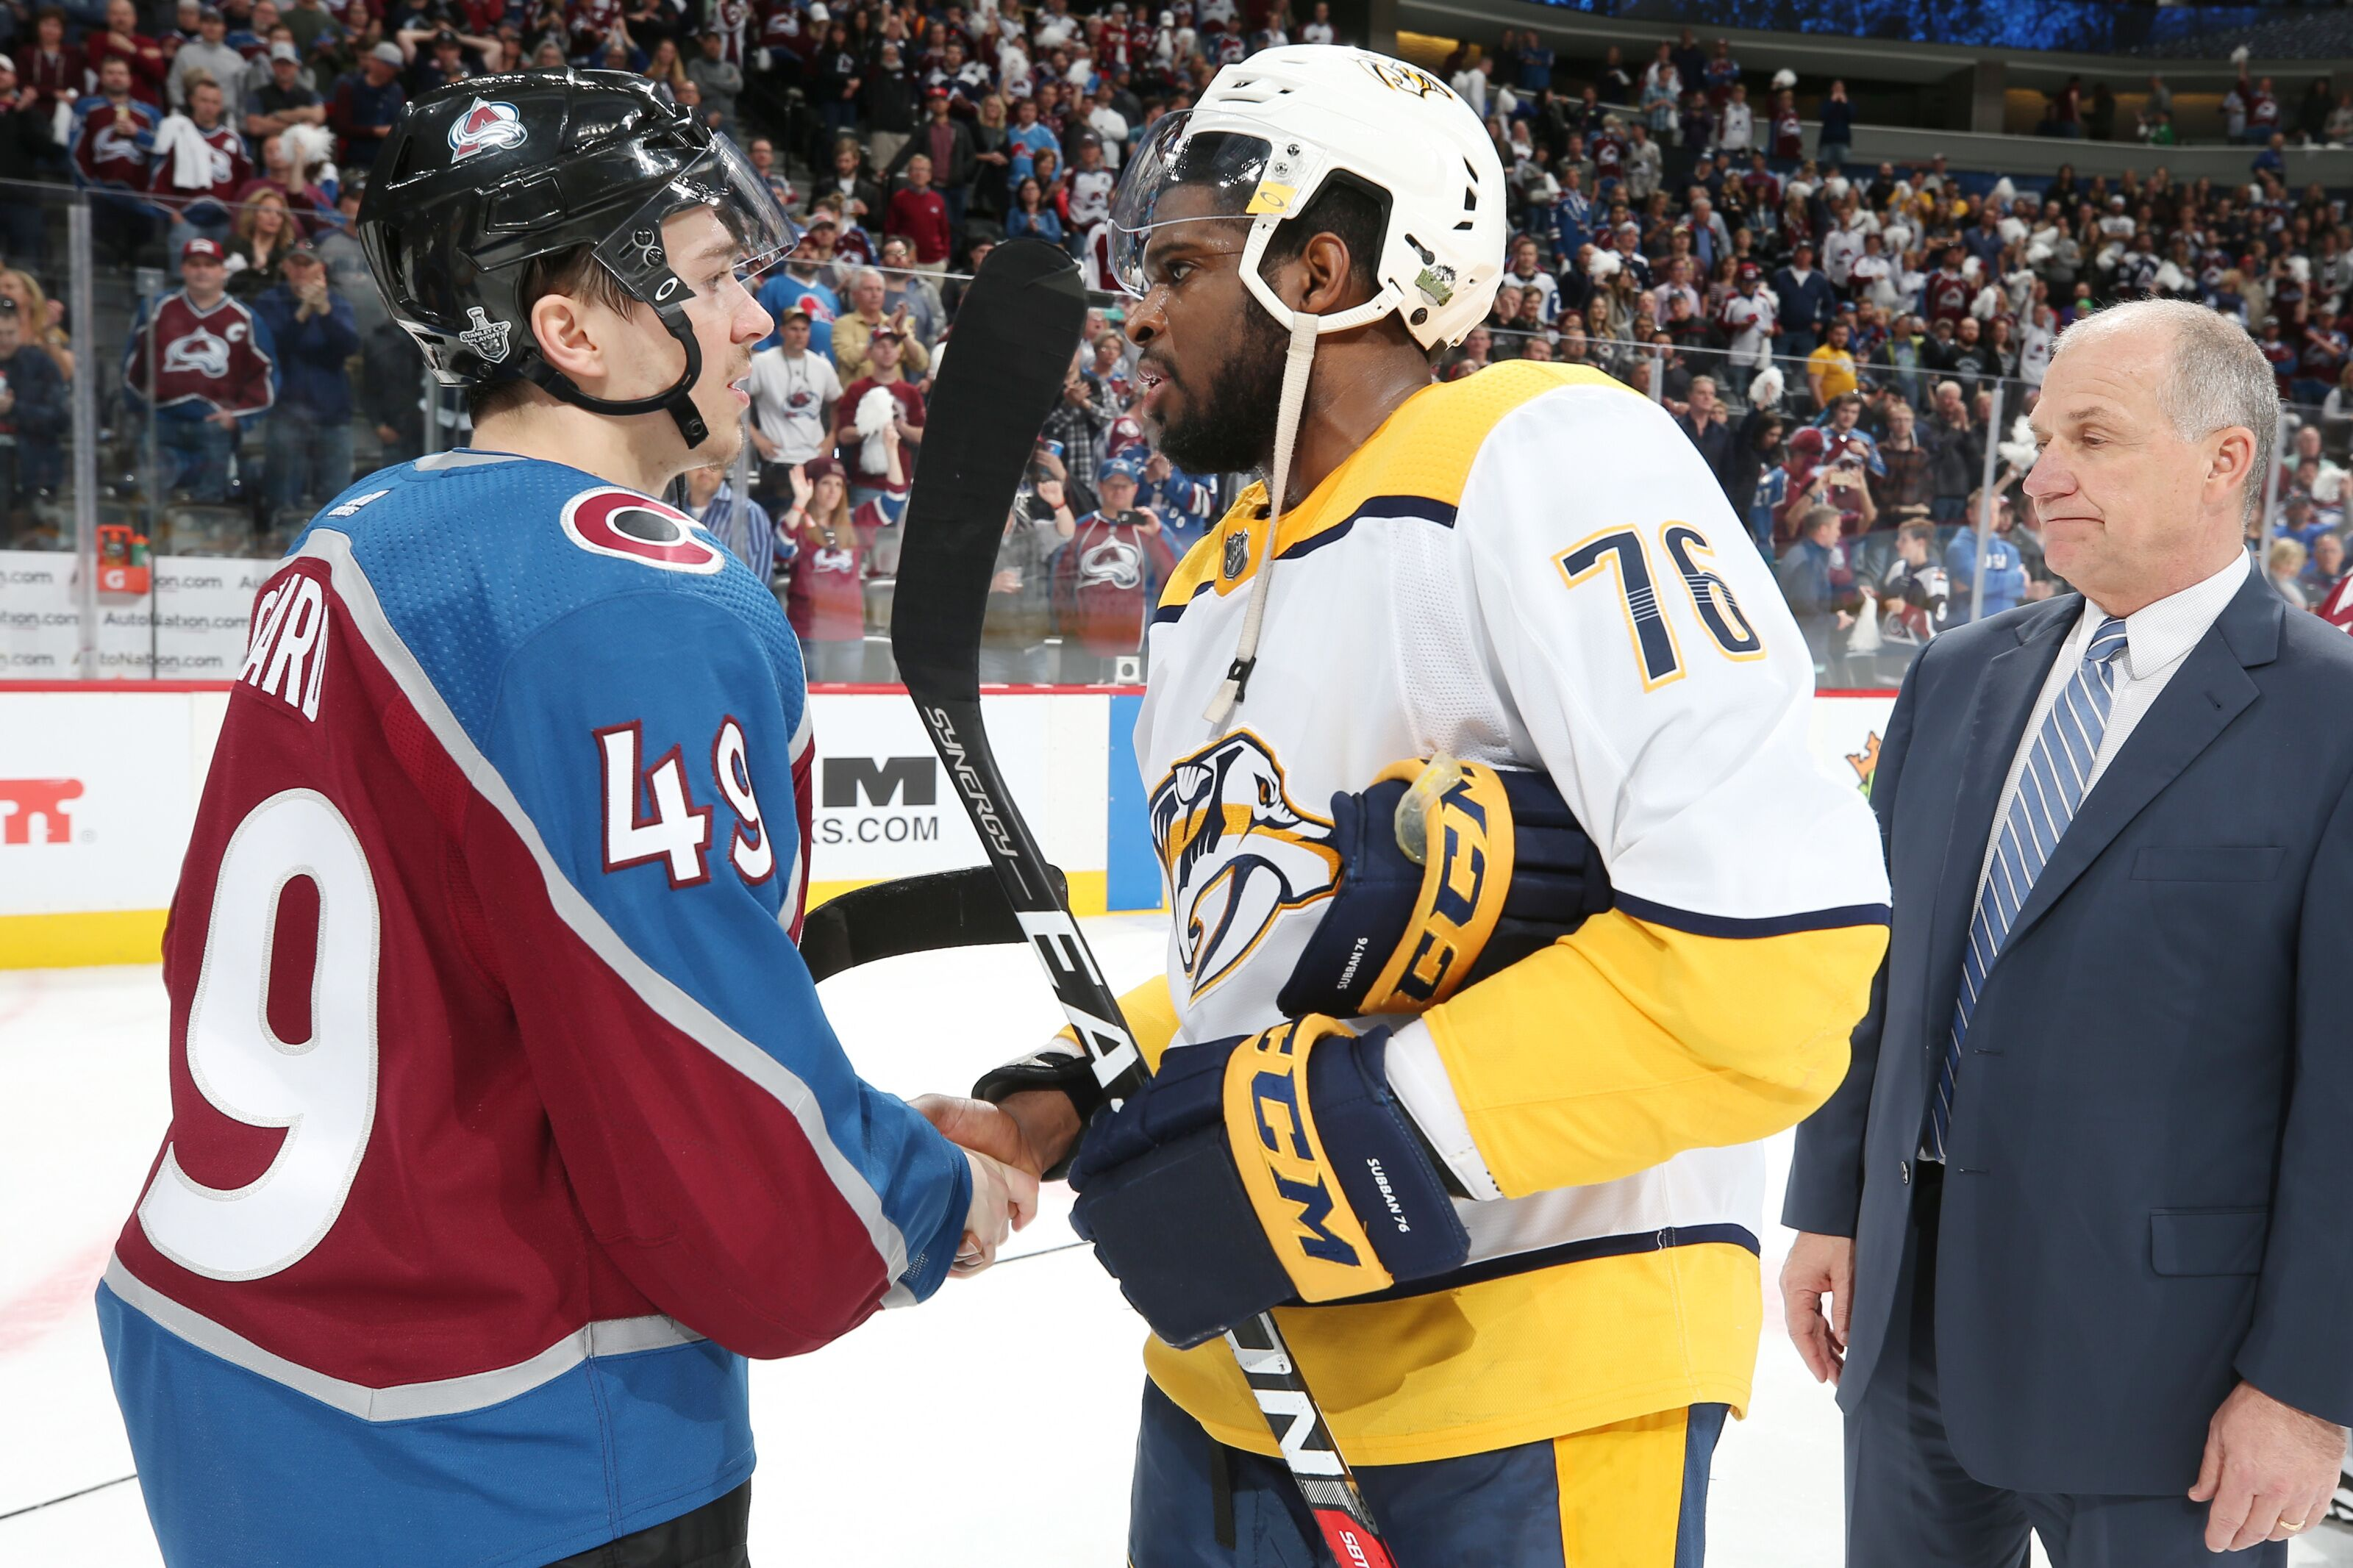 950133326-nashville-predators-v-colorado-avalanche-game-six.jpg